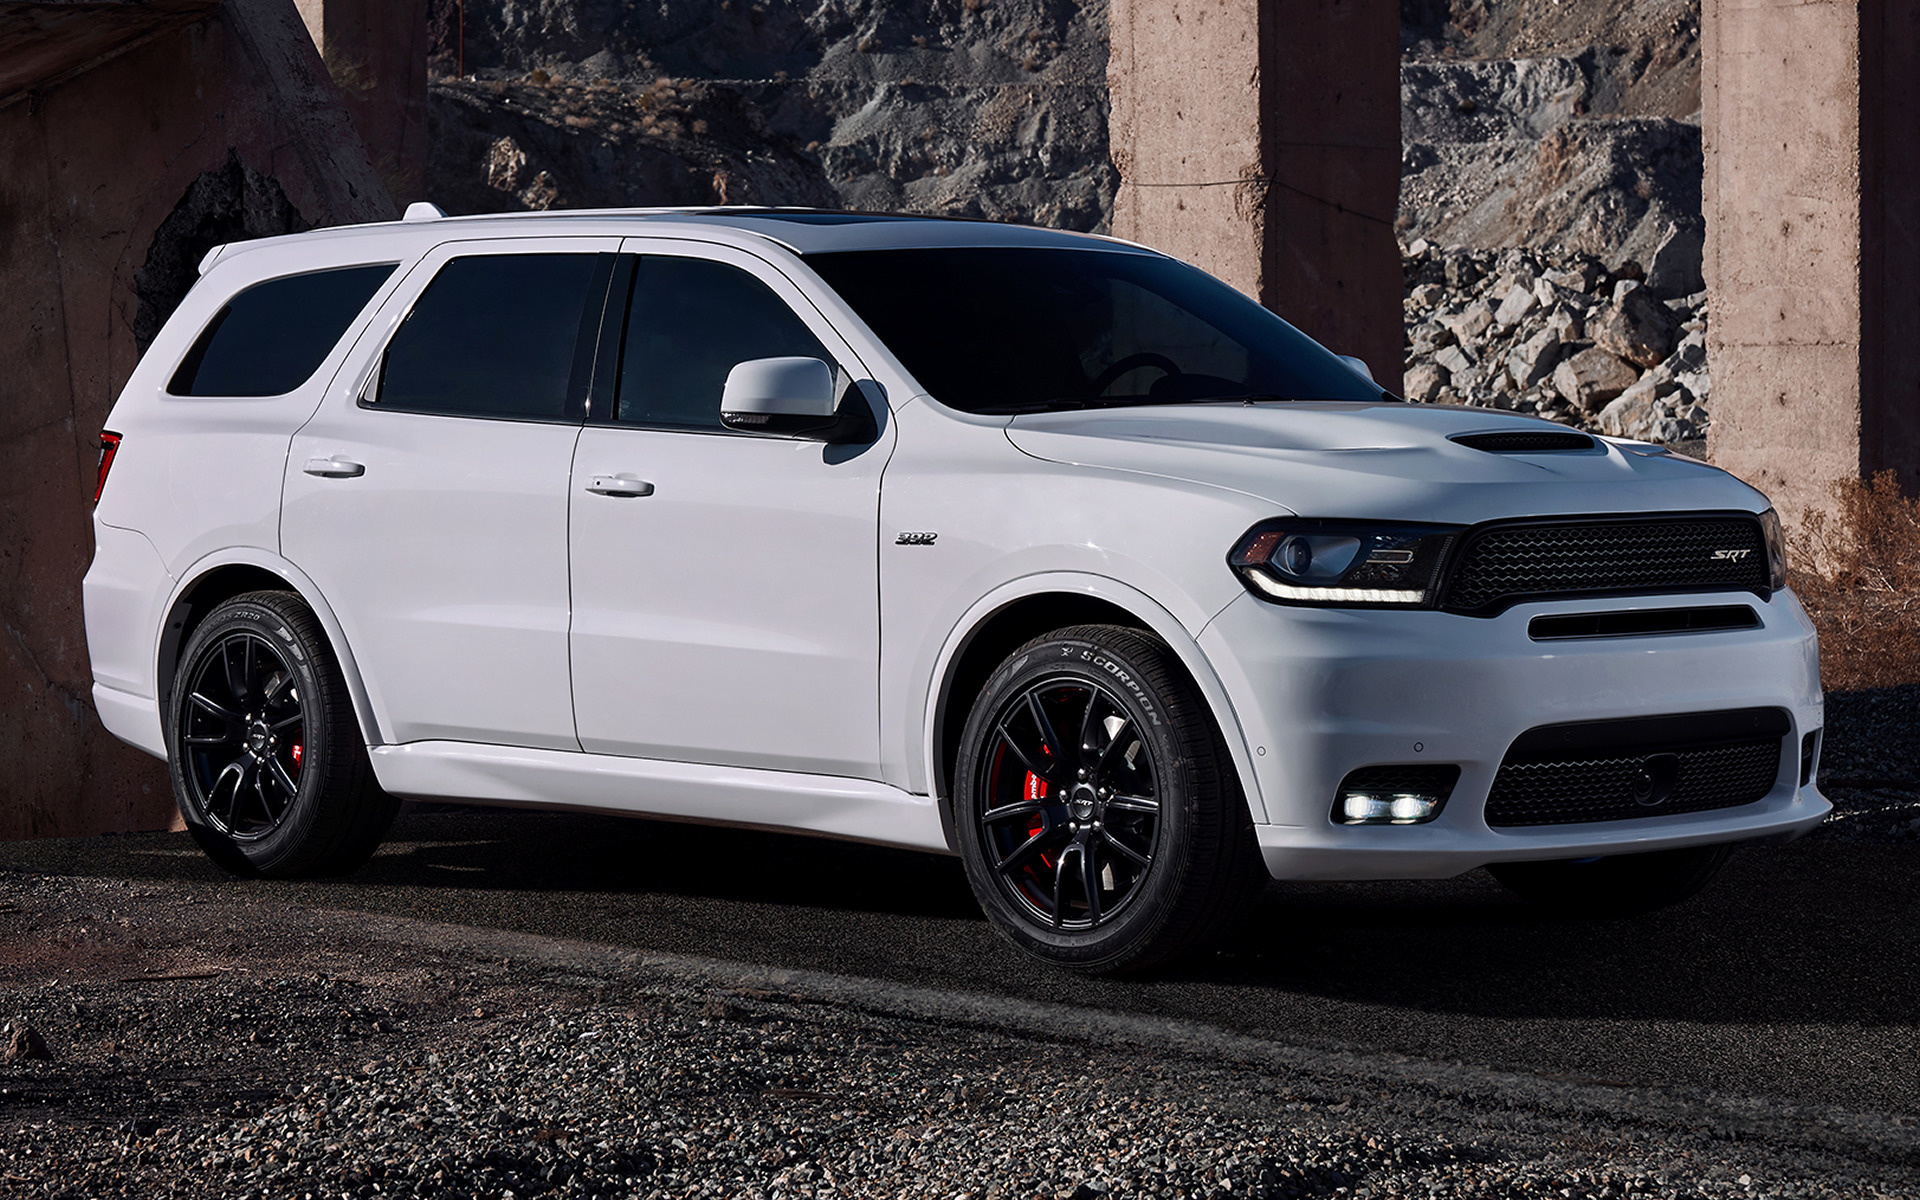 2018 Dodge Durango SRT - Wallpapers and HD Images | Car Pixel